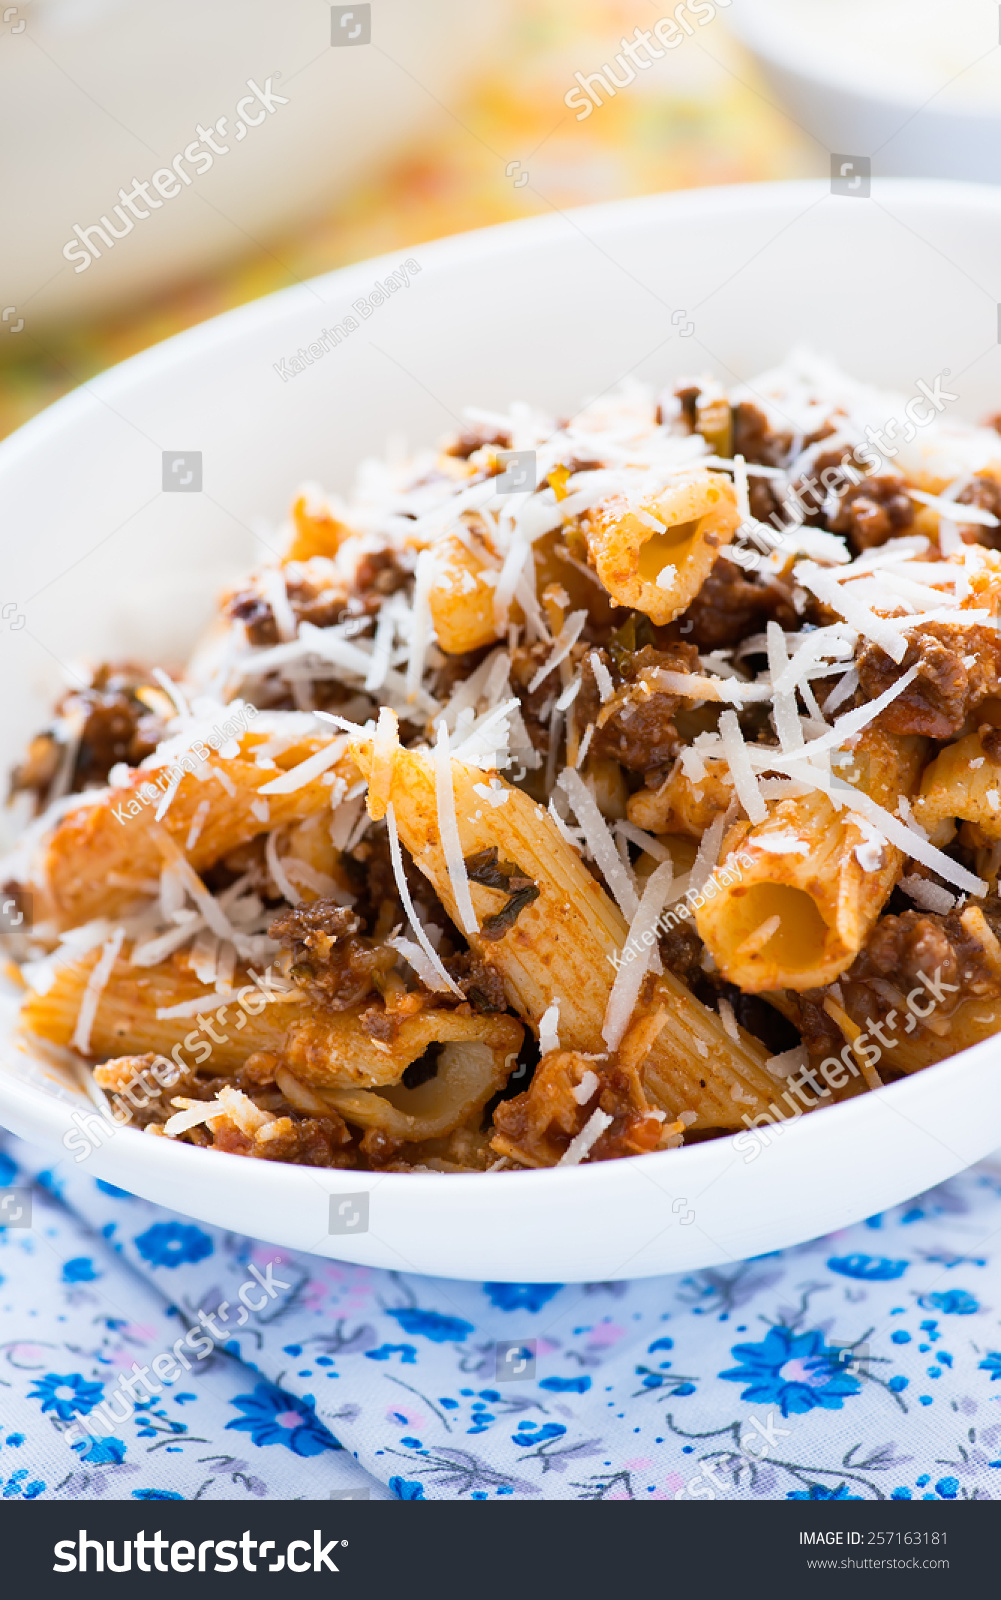 how to make baked pasta with cheese